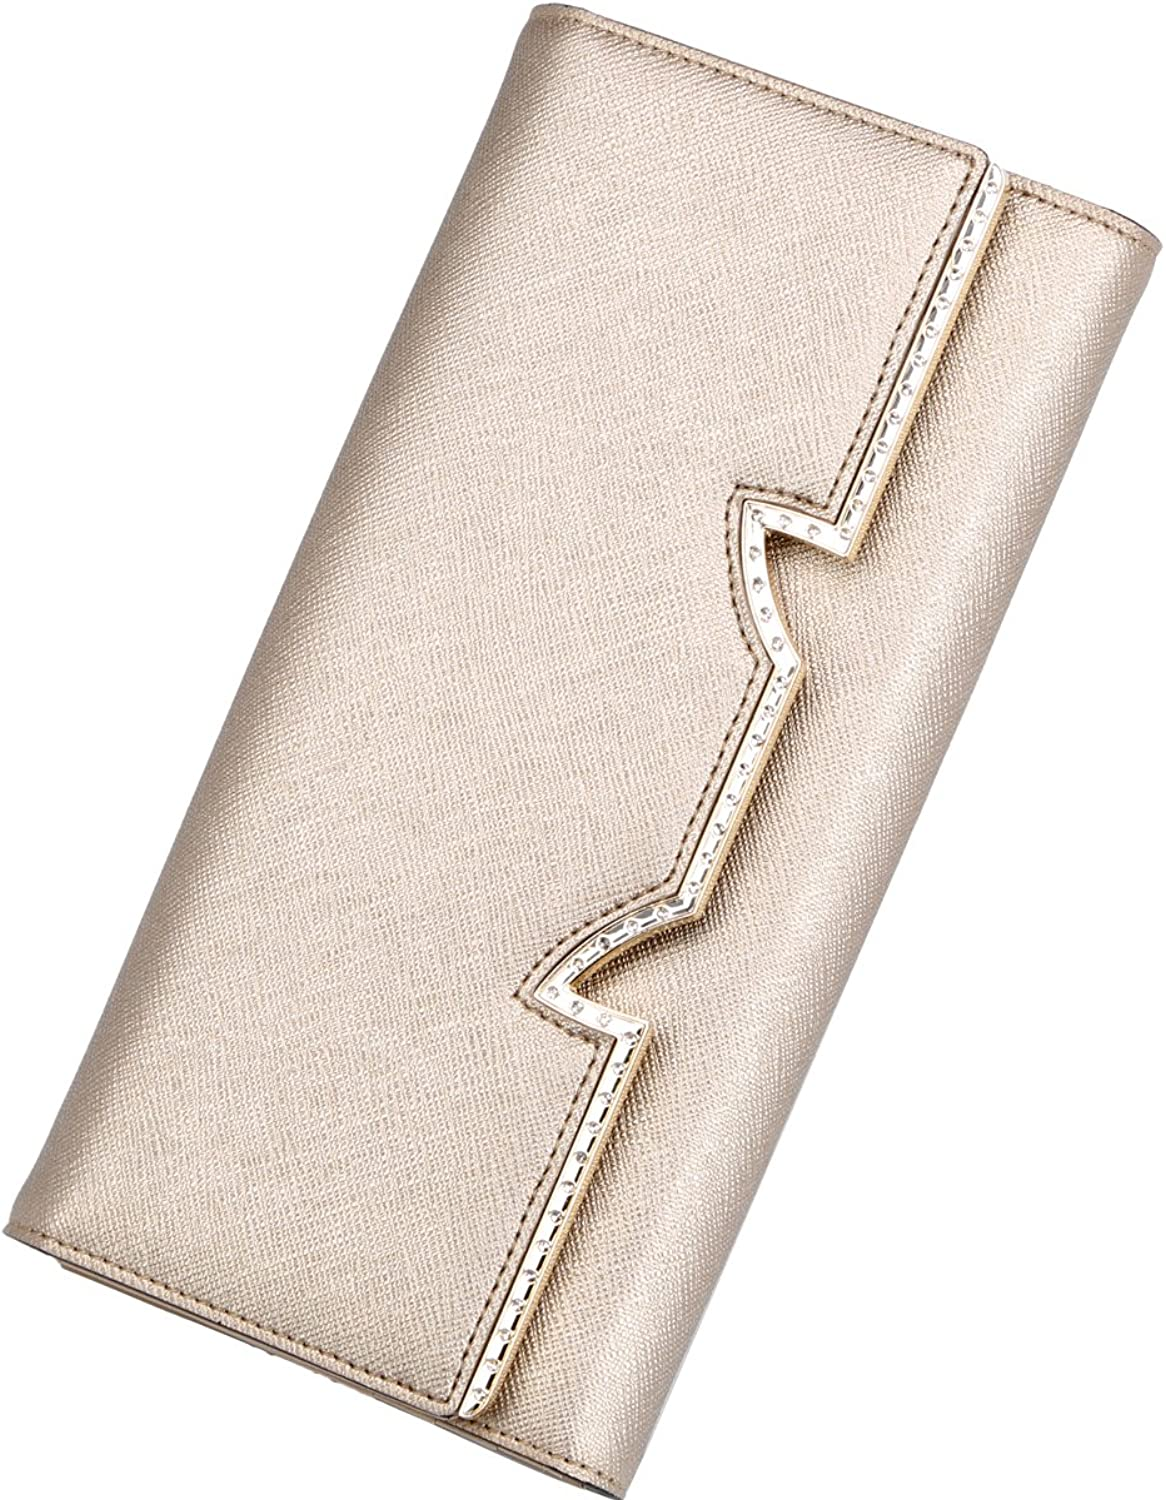 FOXER Women Leather Wallet Long Trifold Clutch Wallet Purse for Ladies, gold